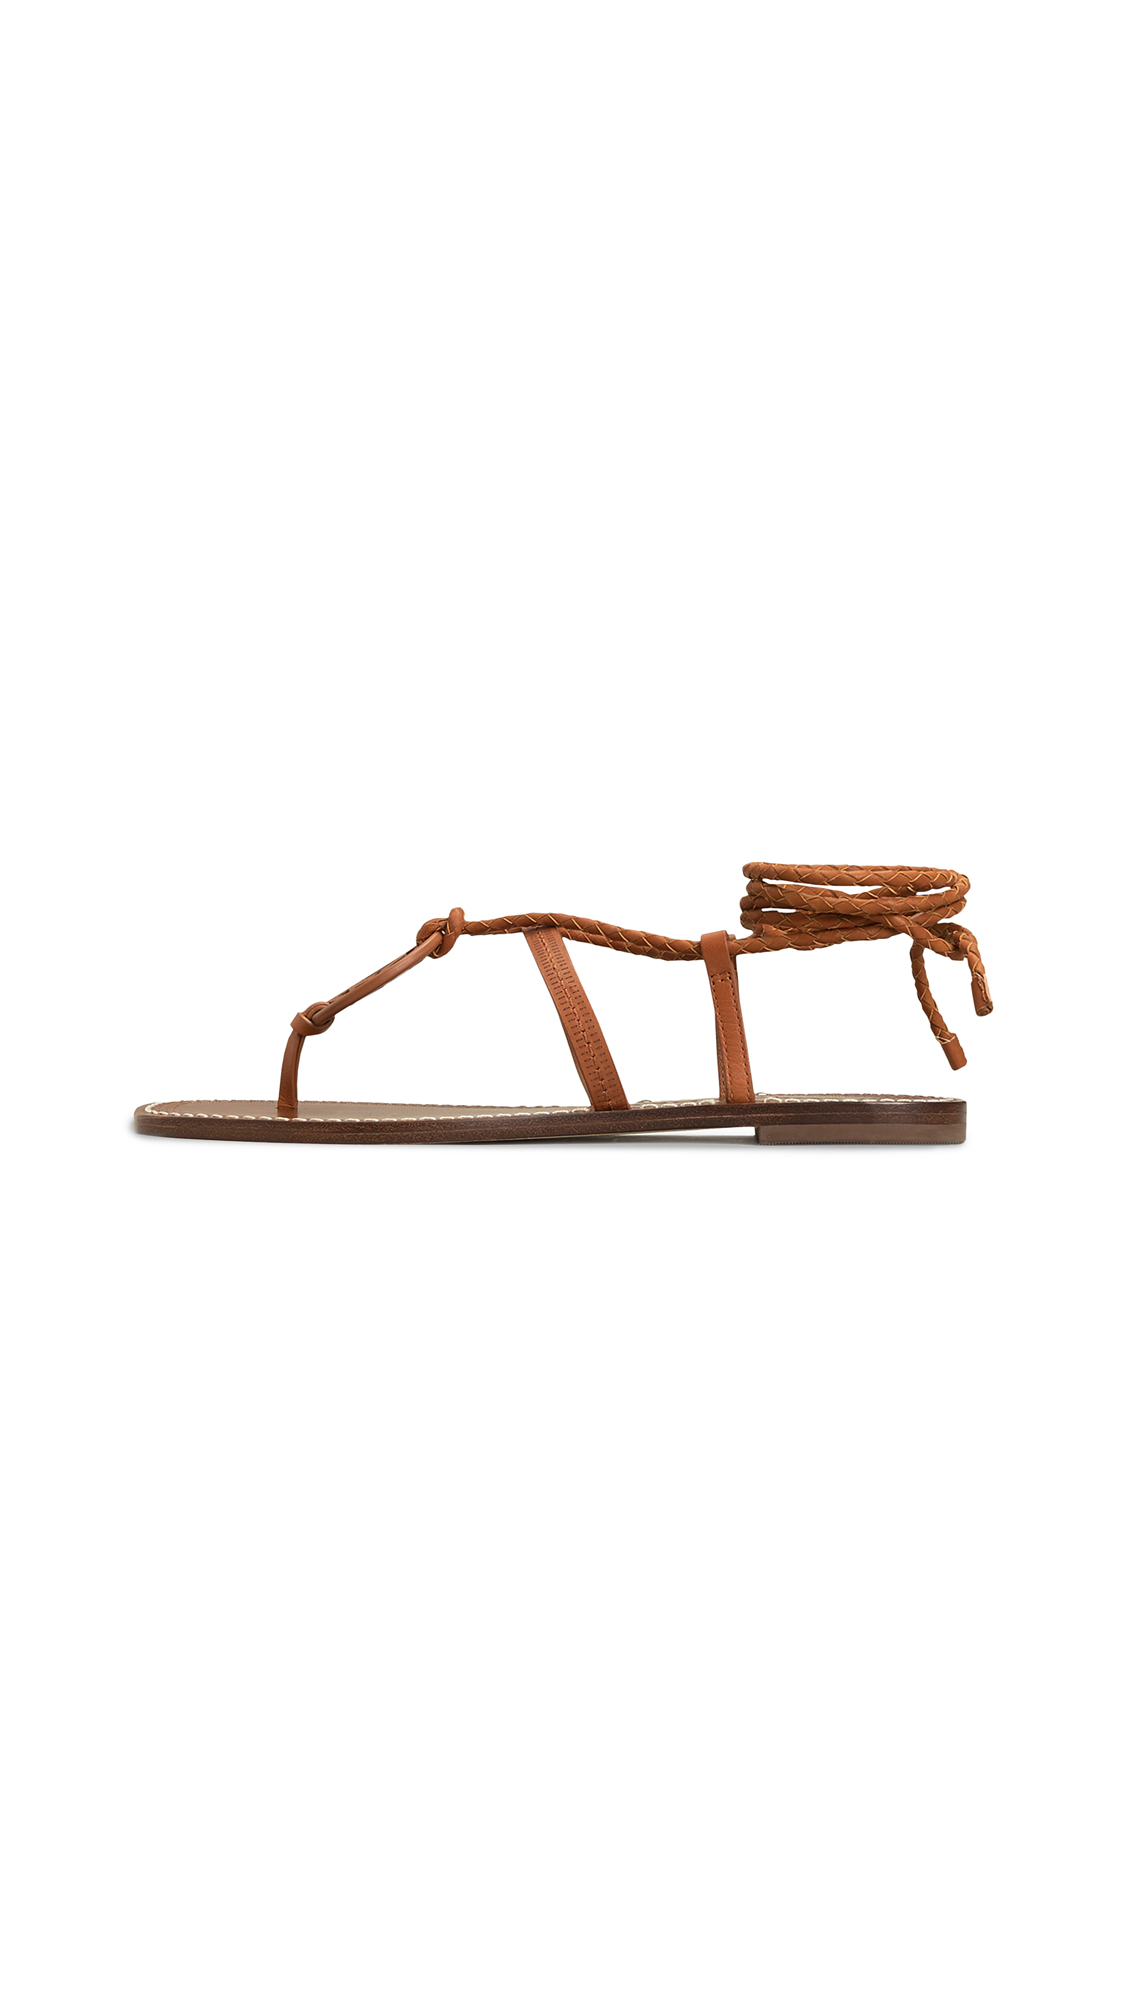 Tory Burch Miller Braided Ankle-Wrap Sandals - 25% Off Sale